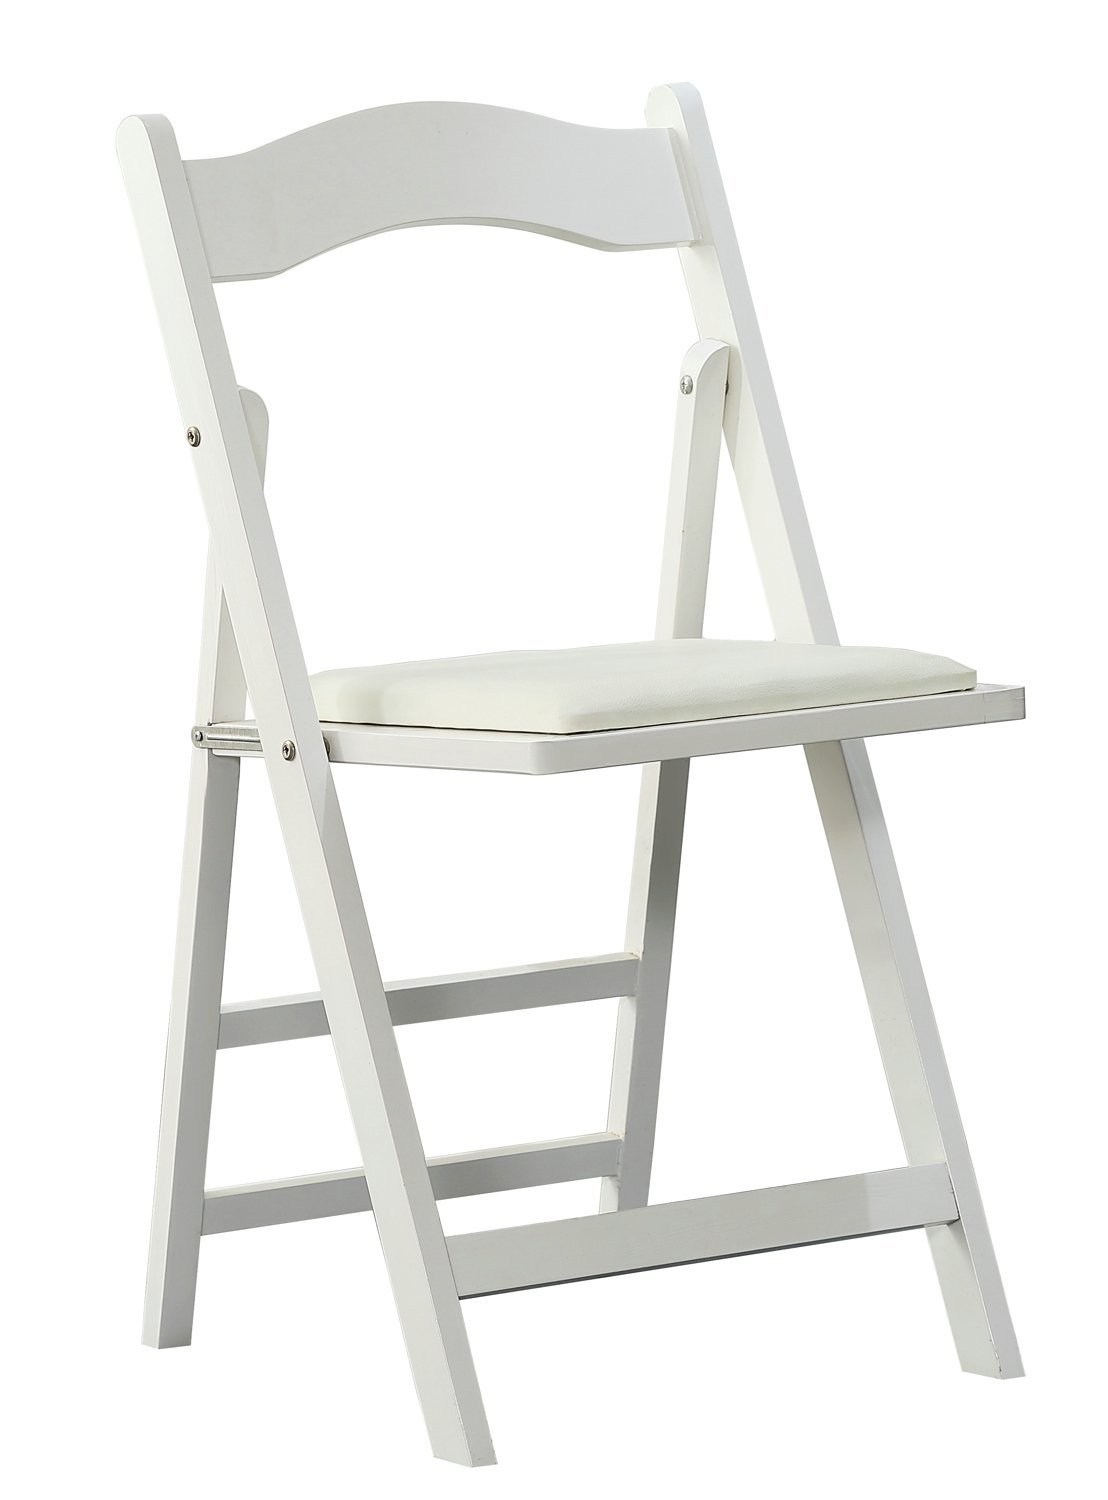 Orolay Wood Folding Chairs Dinning Chair Office Chair (White)